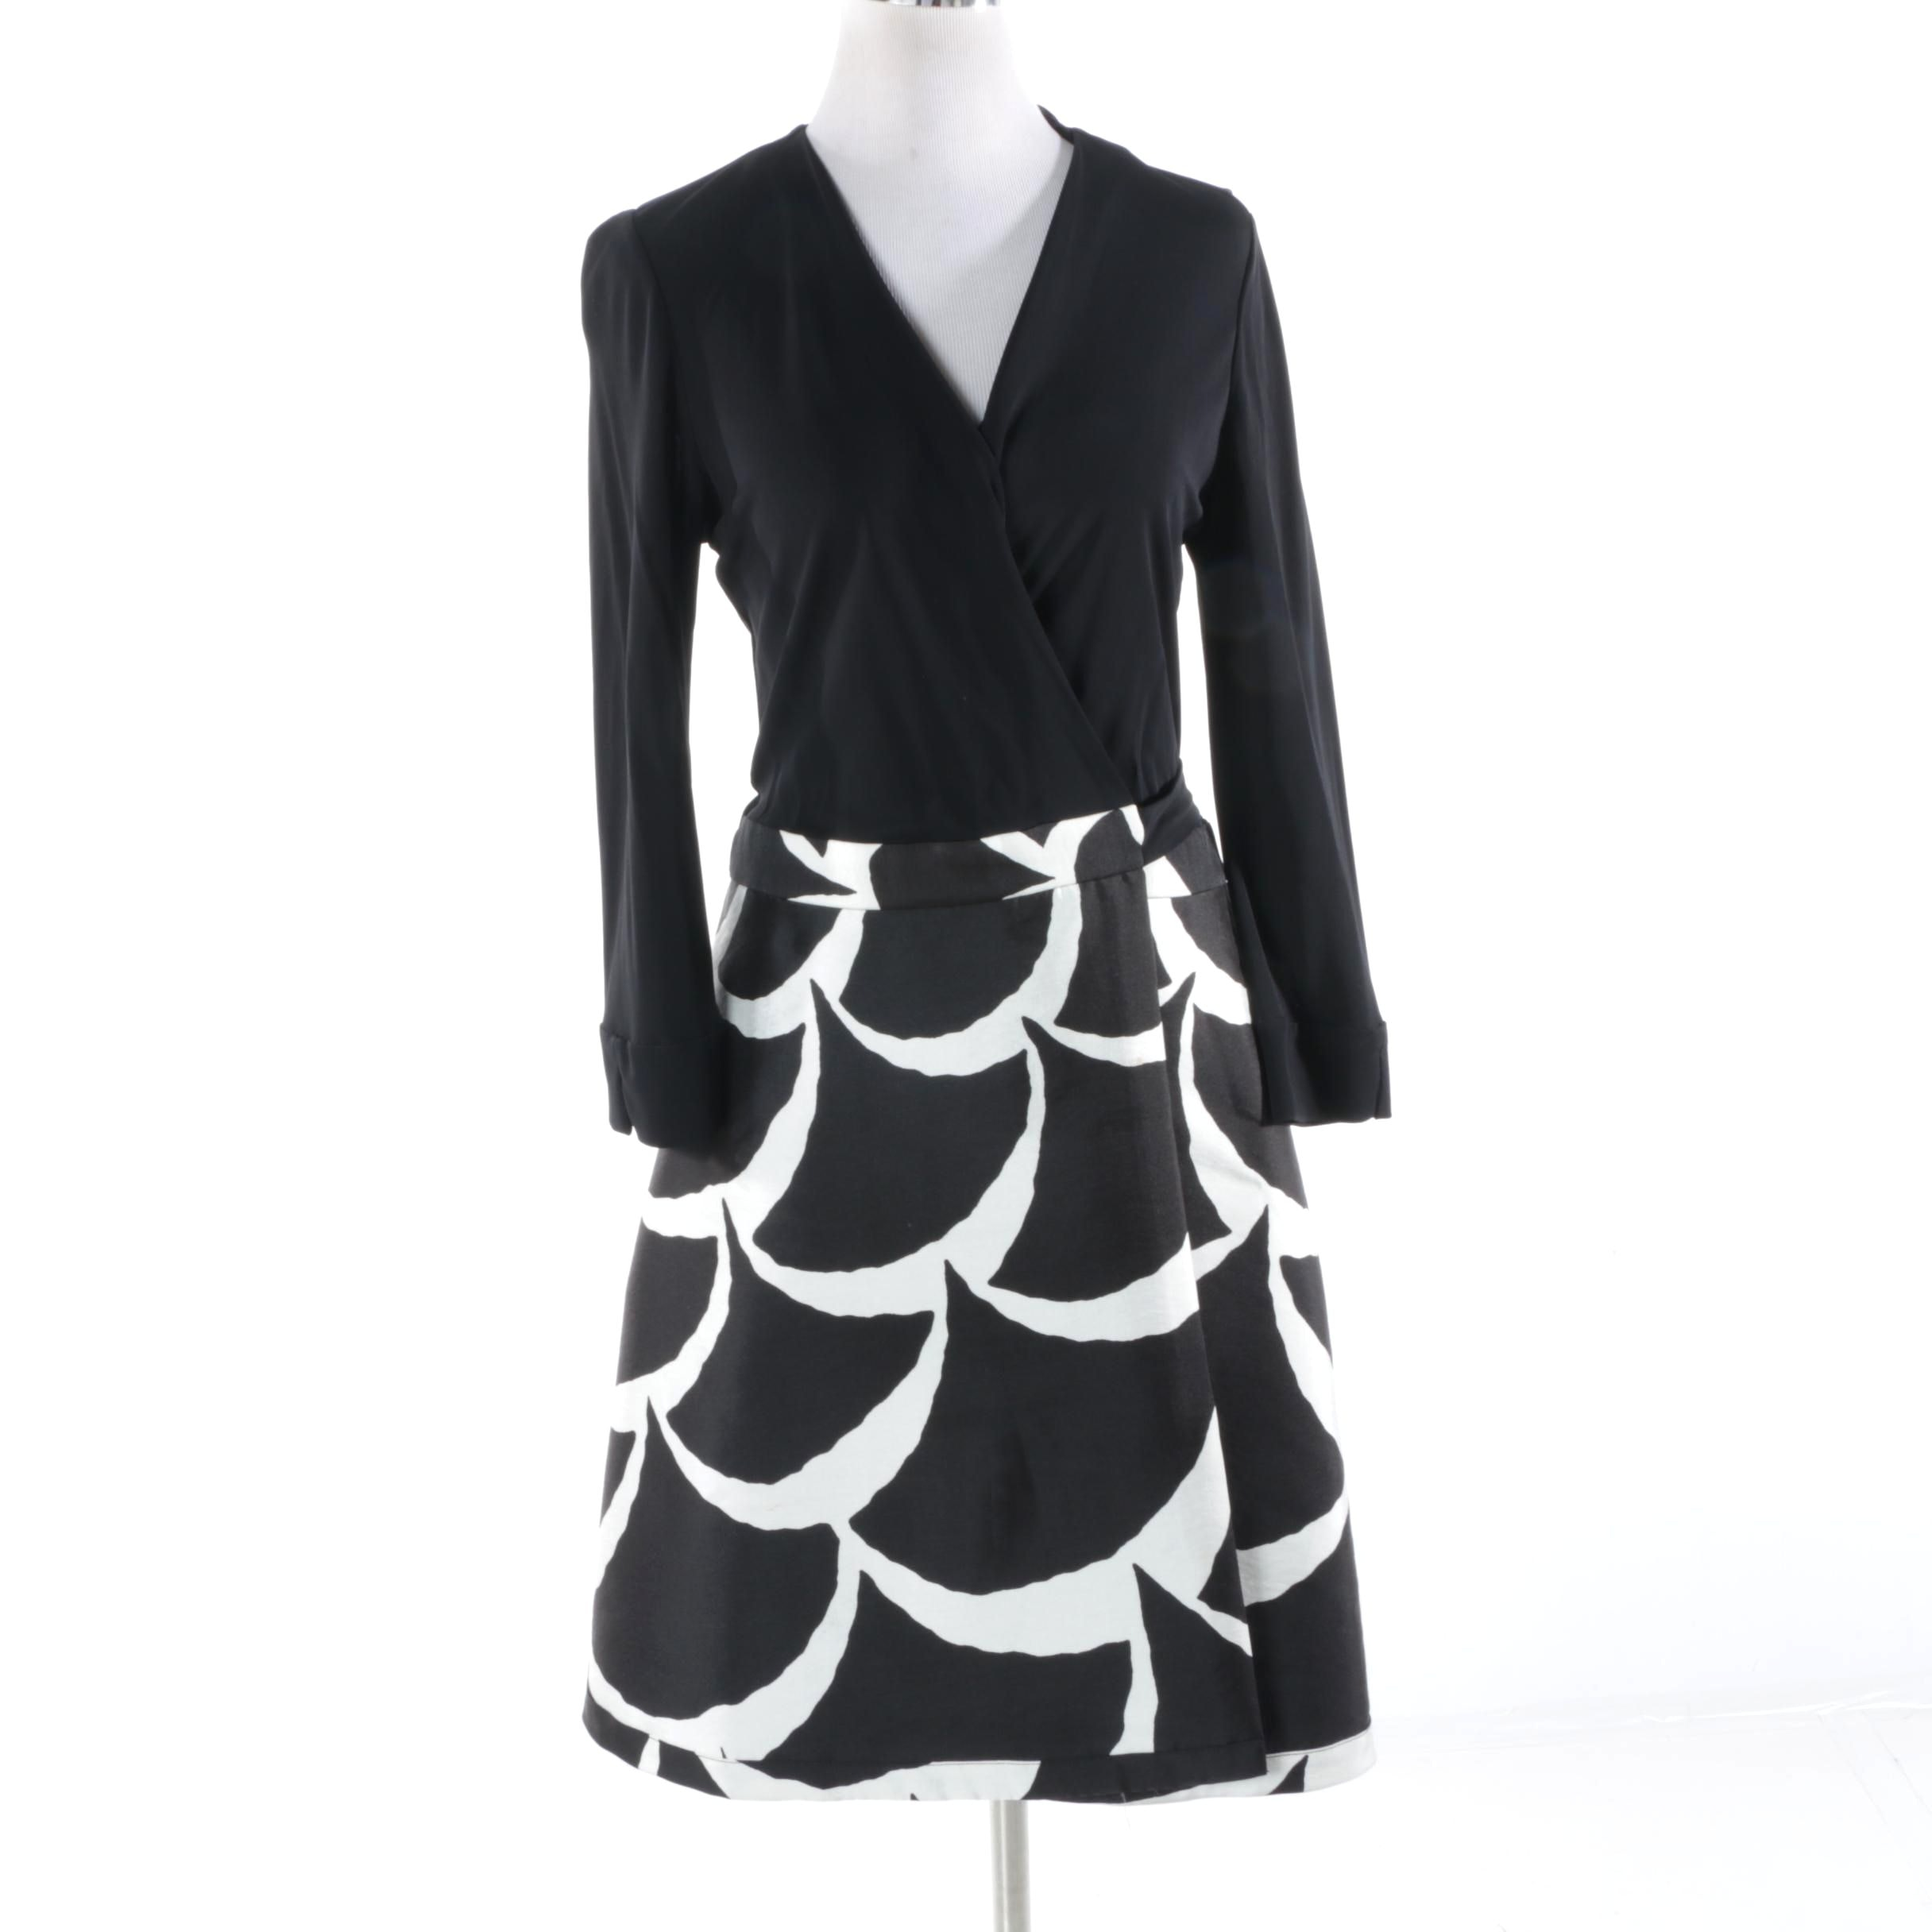 Diane von Furstenberg Black, Brown and White Wrap Dress